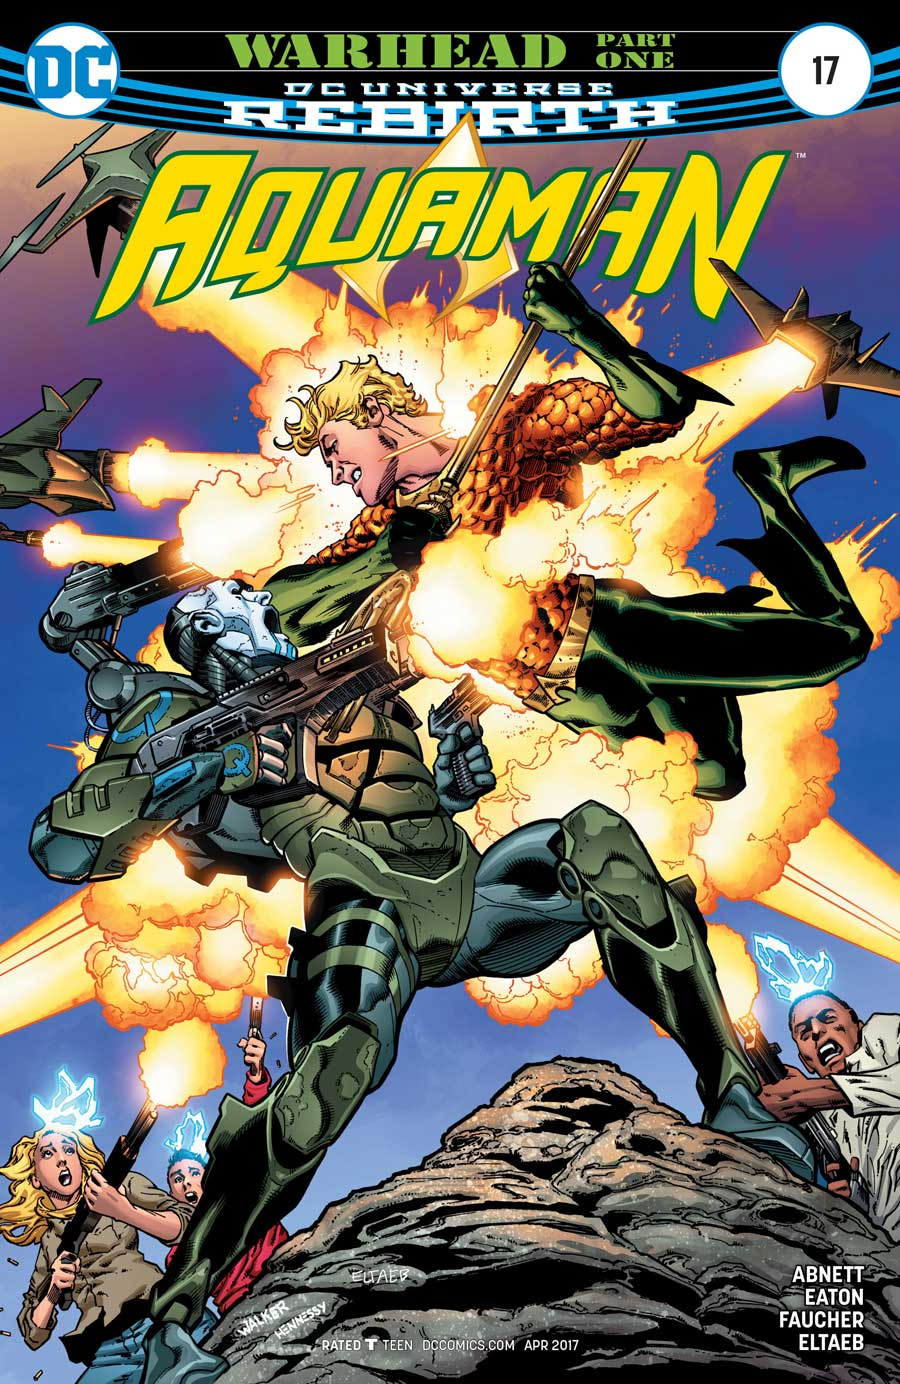 AQUAMAN #17 by Dan Abnett, Scot Eaton and Wayne Faucher